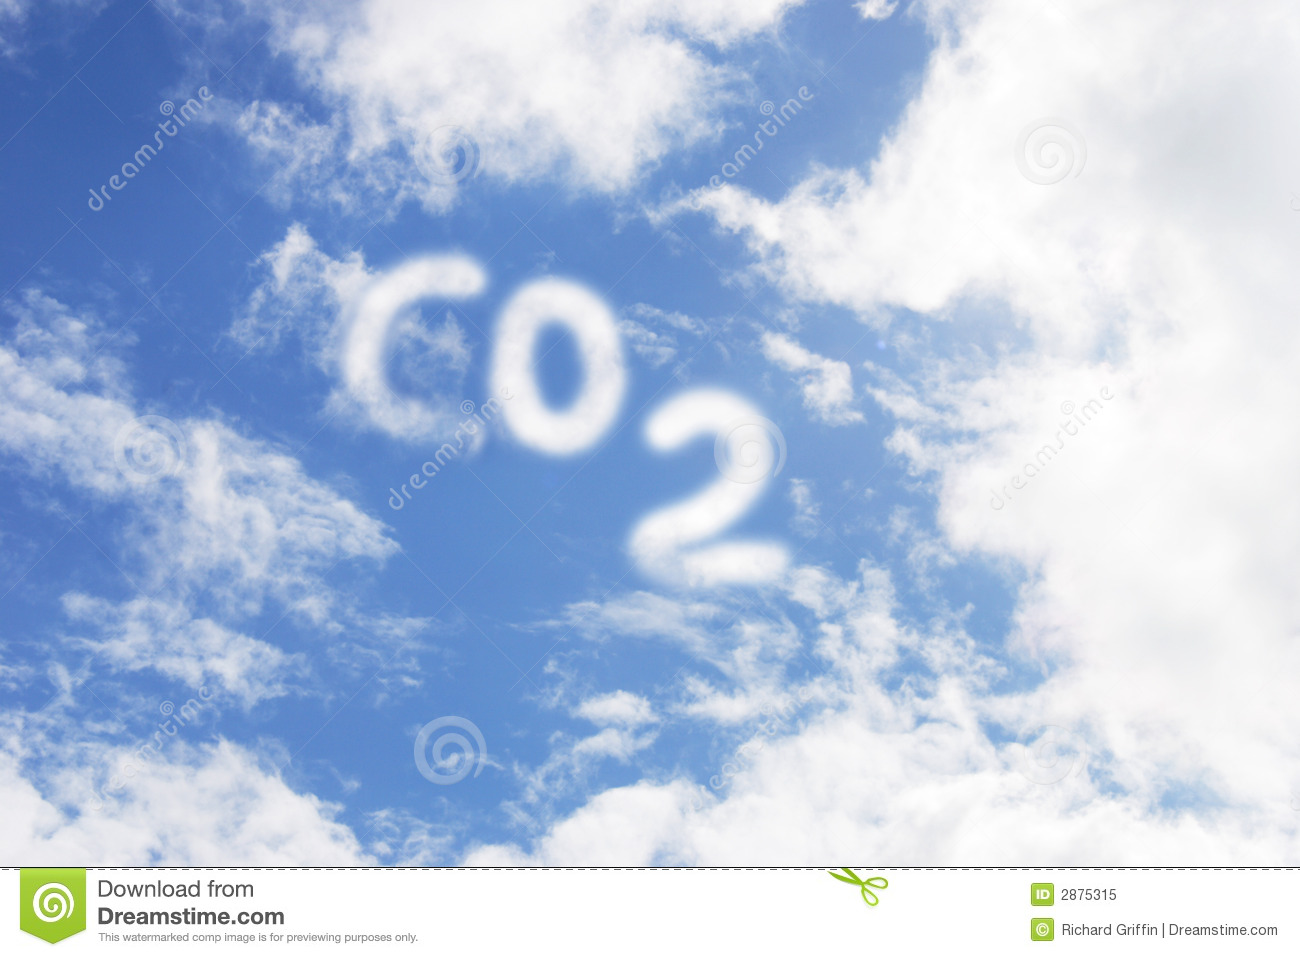 Co2 Royalty Free Stock Photo Image 2875315